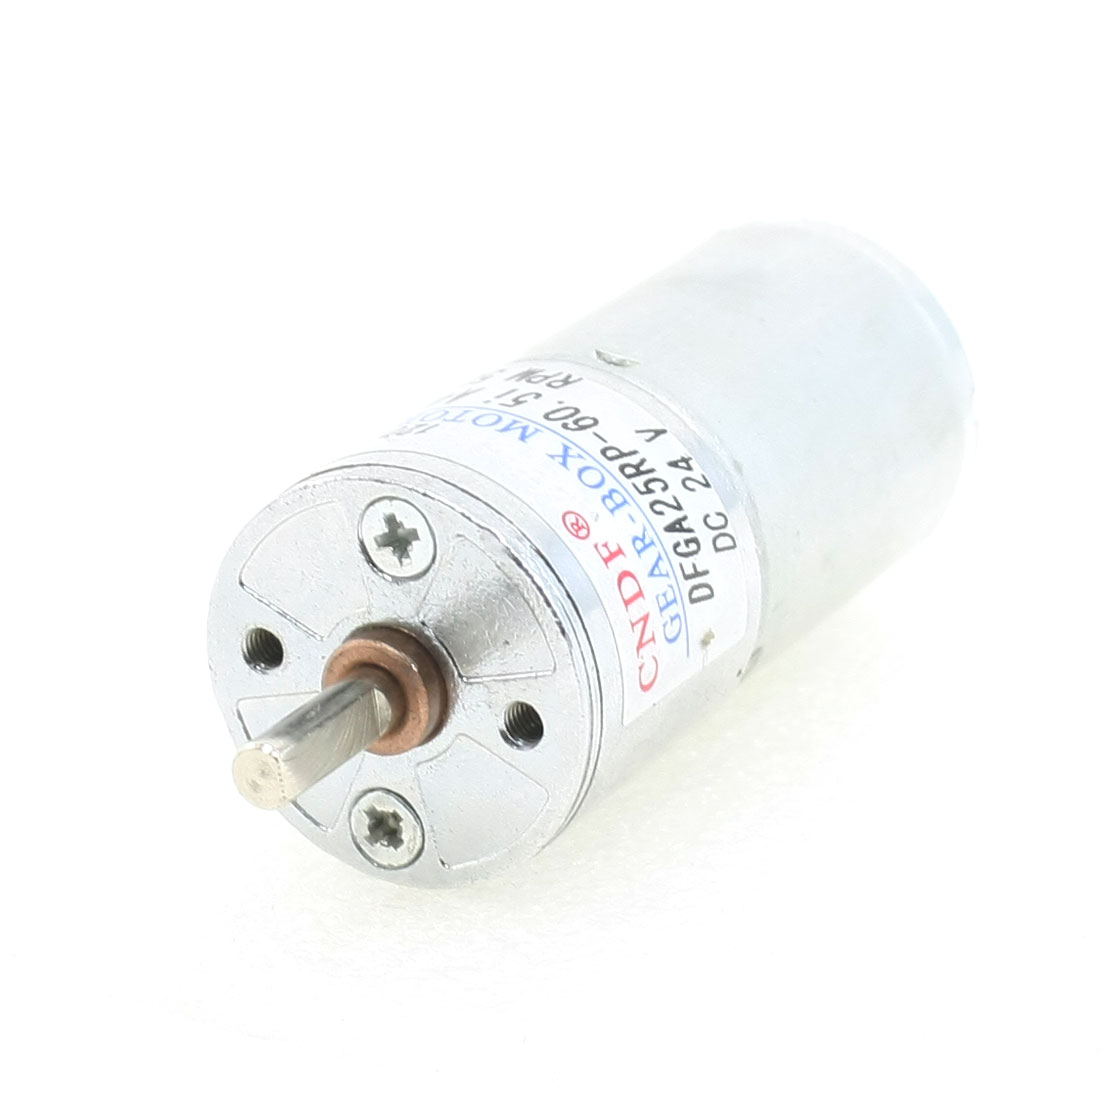 25mm Body Dia Two Terminals Auto Shutter Gear Motor 24VDC 50RPM